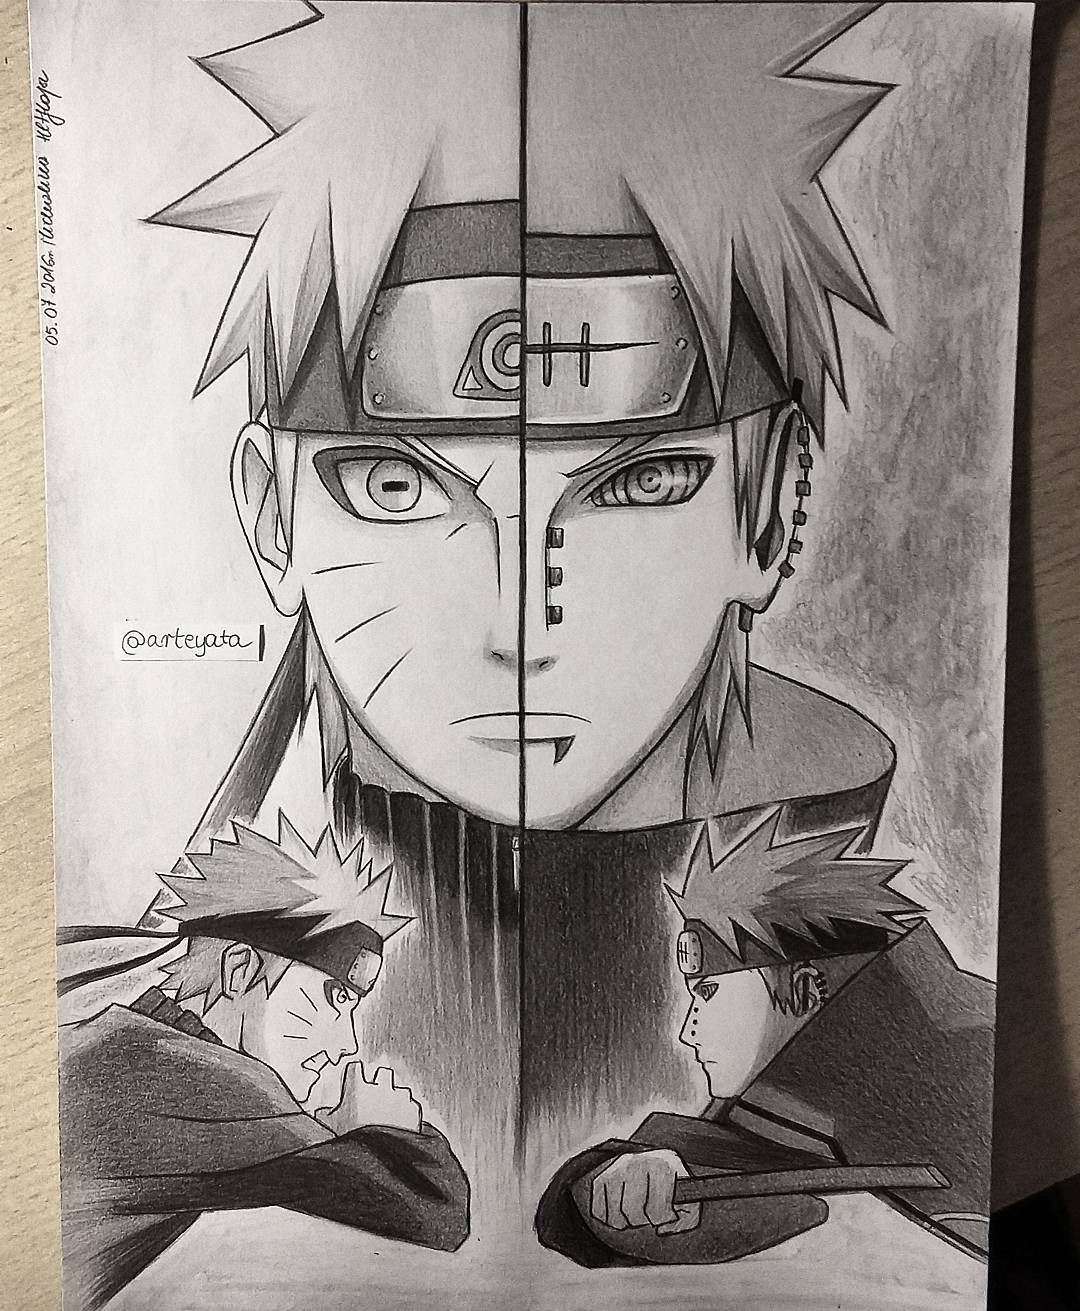 """Photo of @arteyata on Instagram: """"Naruto vs Pain this one took me almost 10 hours to make I'm so sloww"""""""